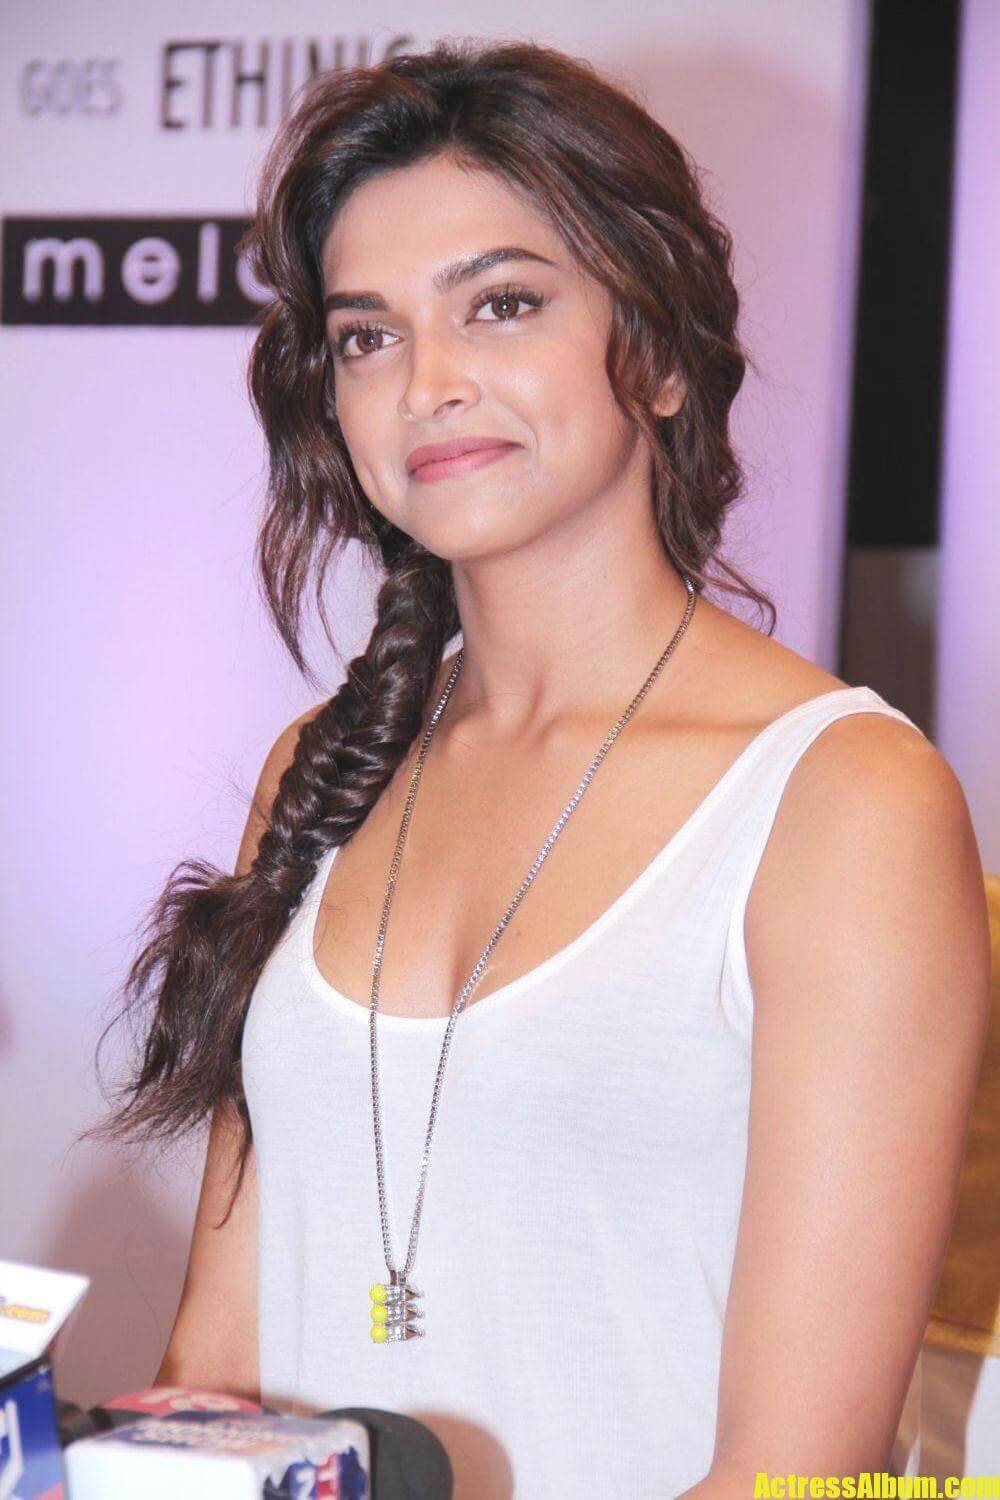 deepika-padukone-cocktail-photos-1